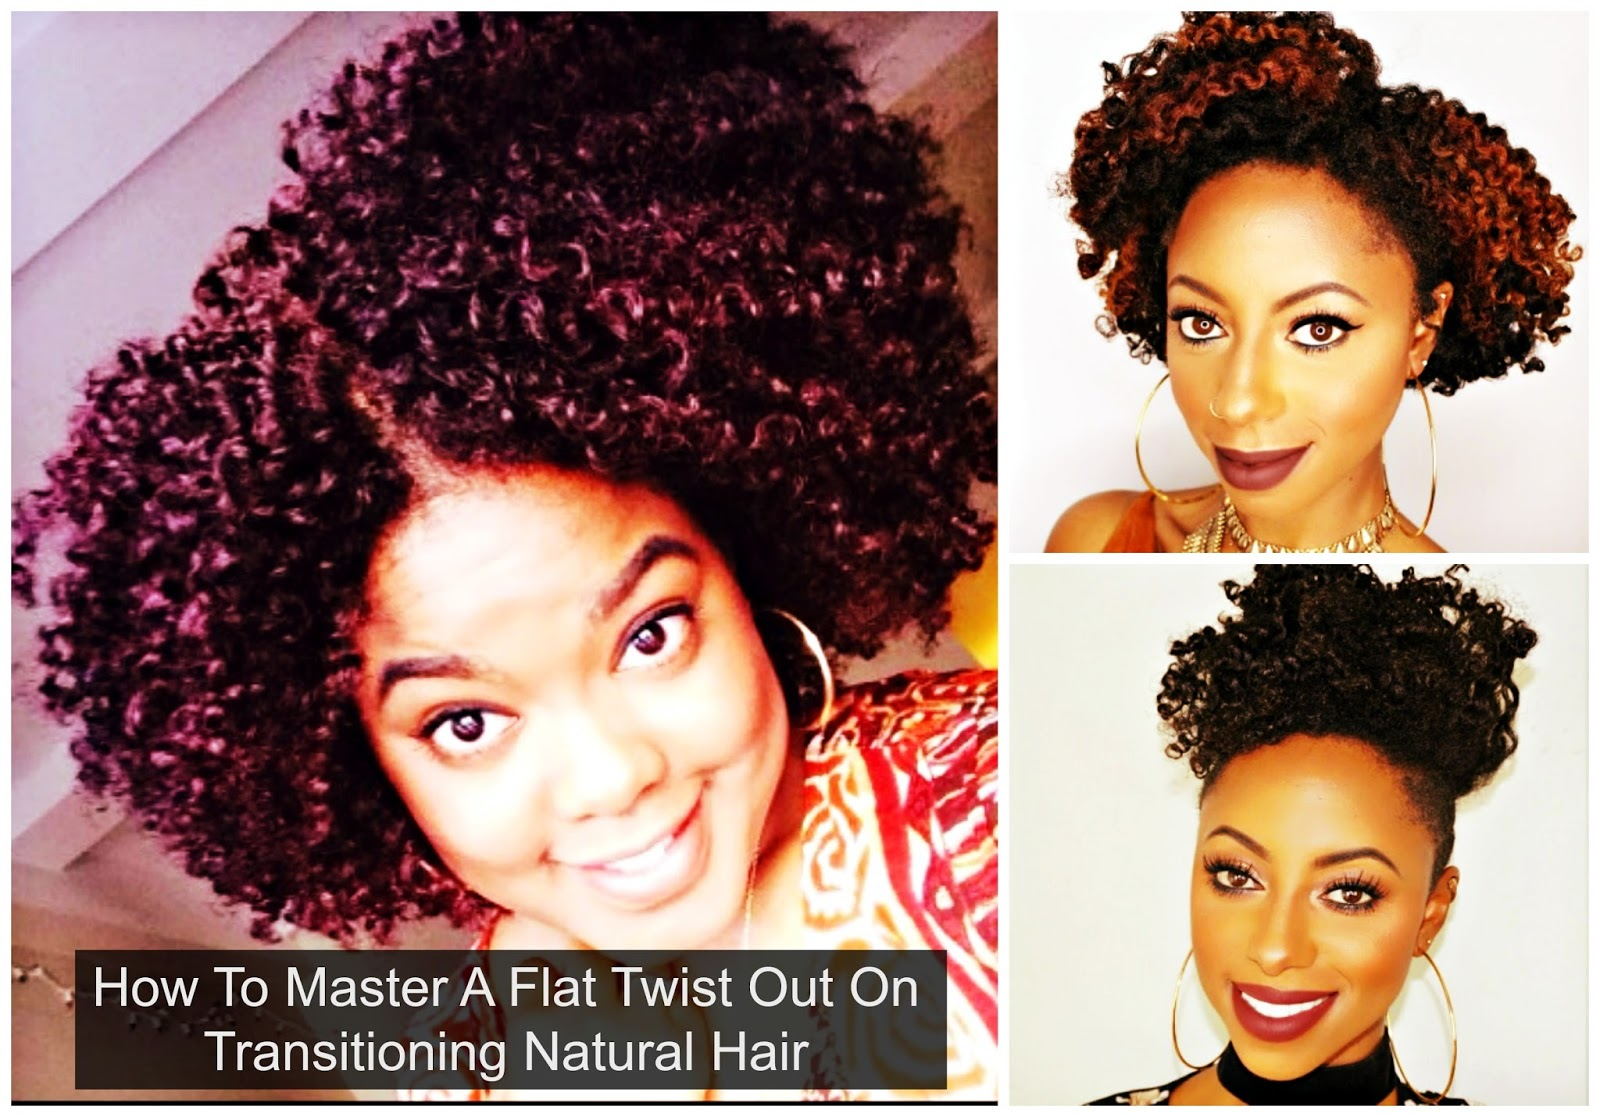 Click here to buy Eco Styler Gel and Master the flat twist out!